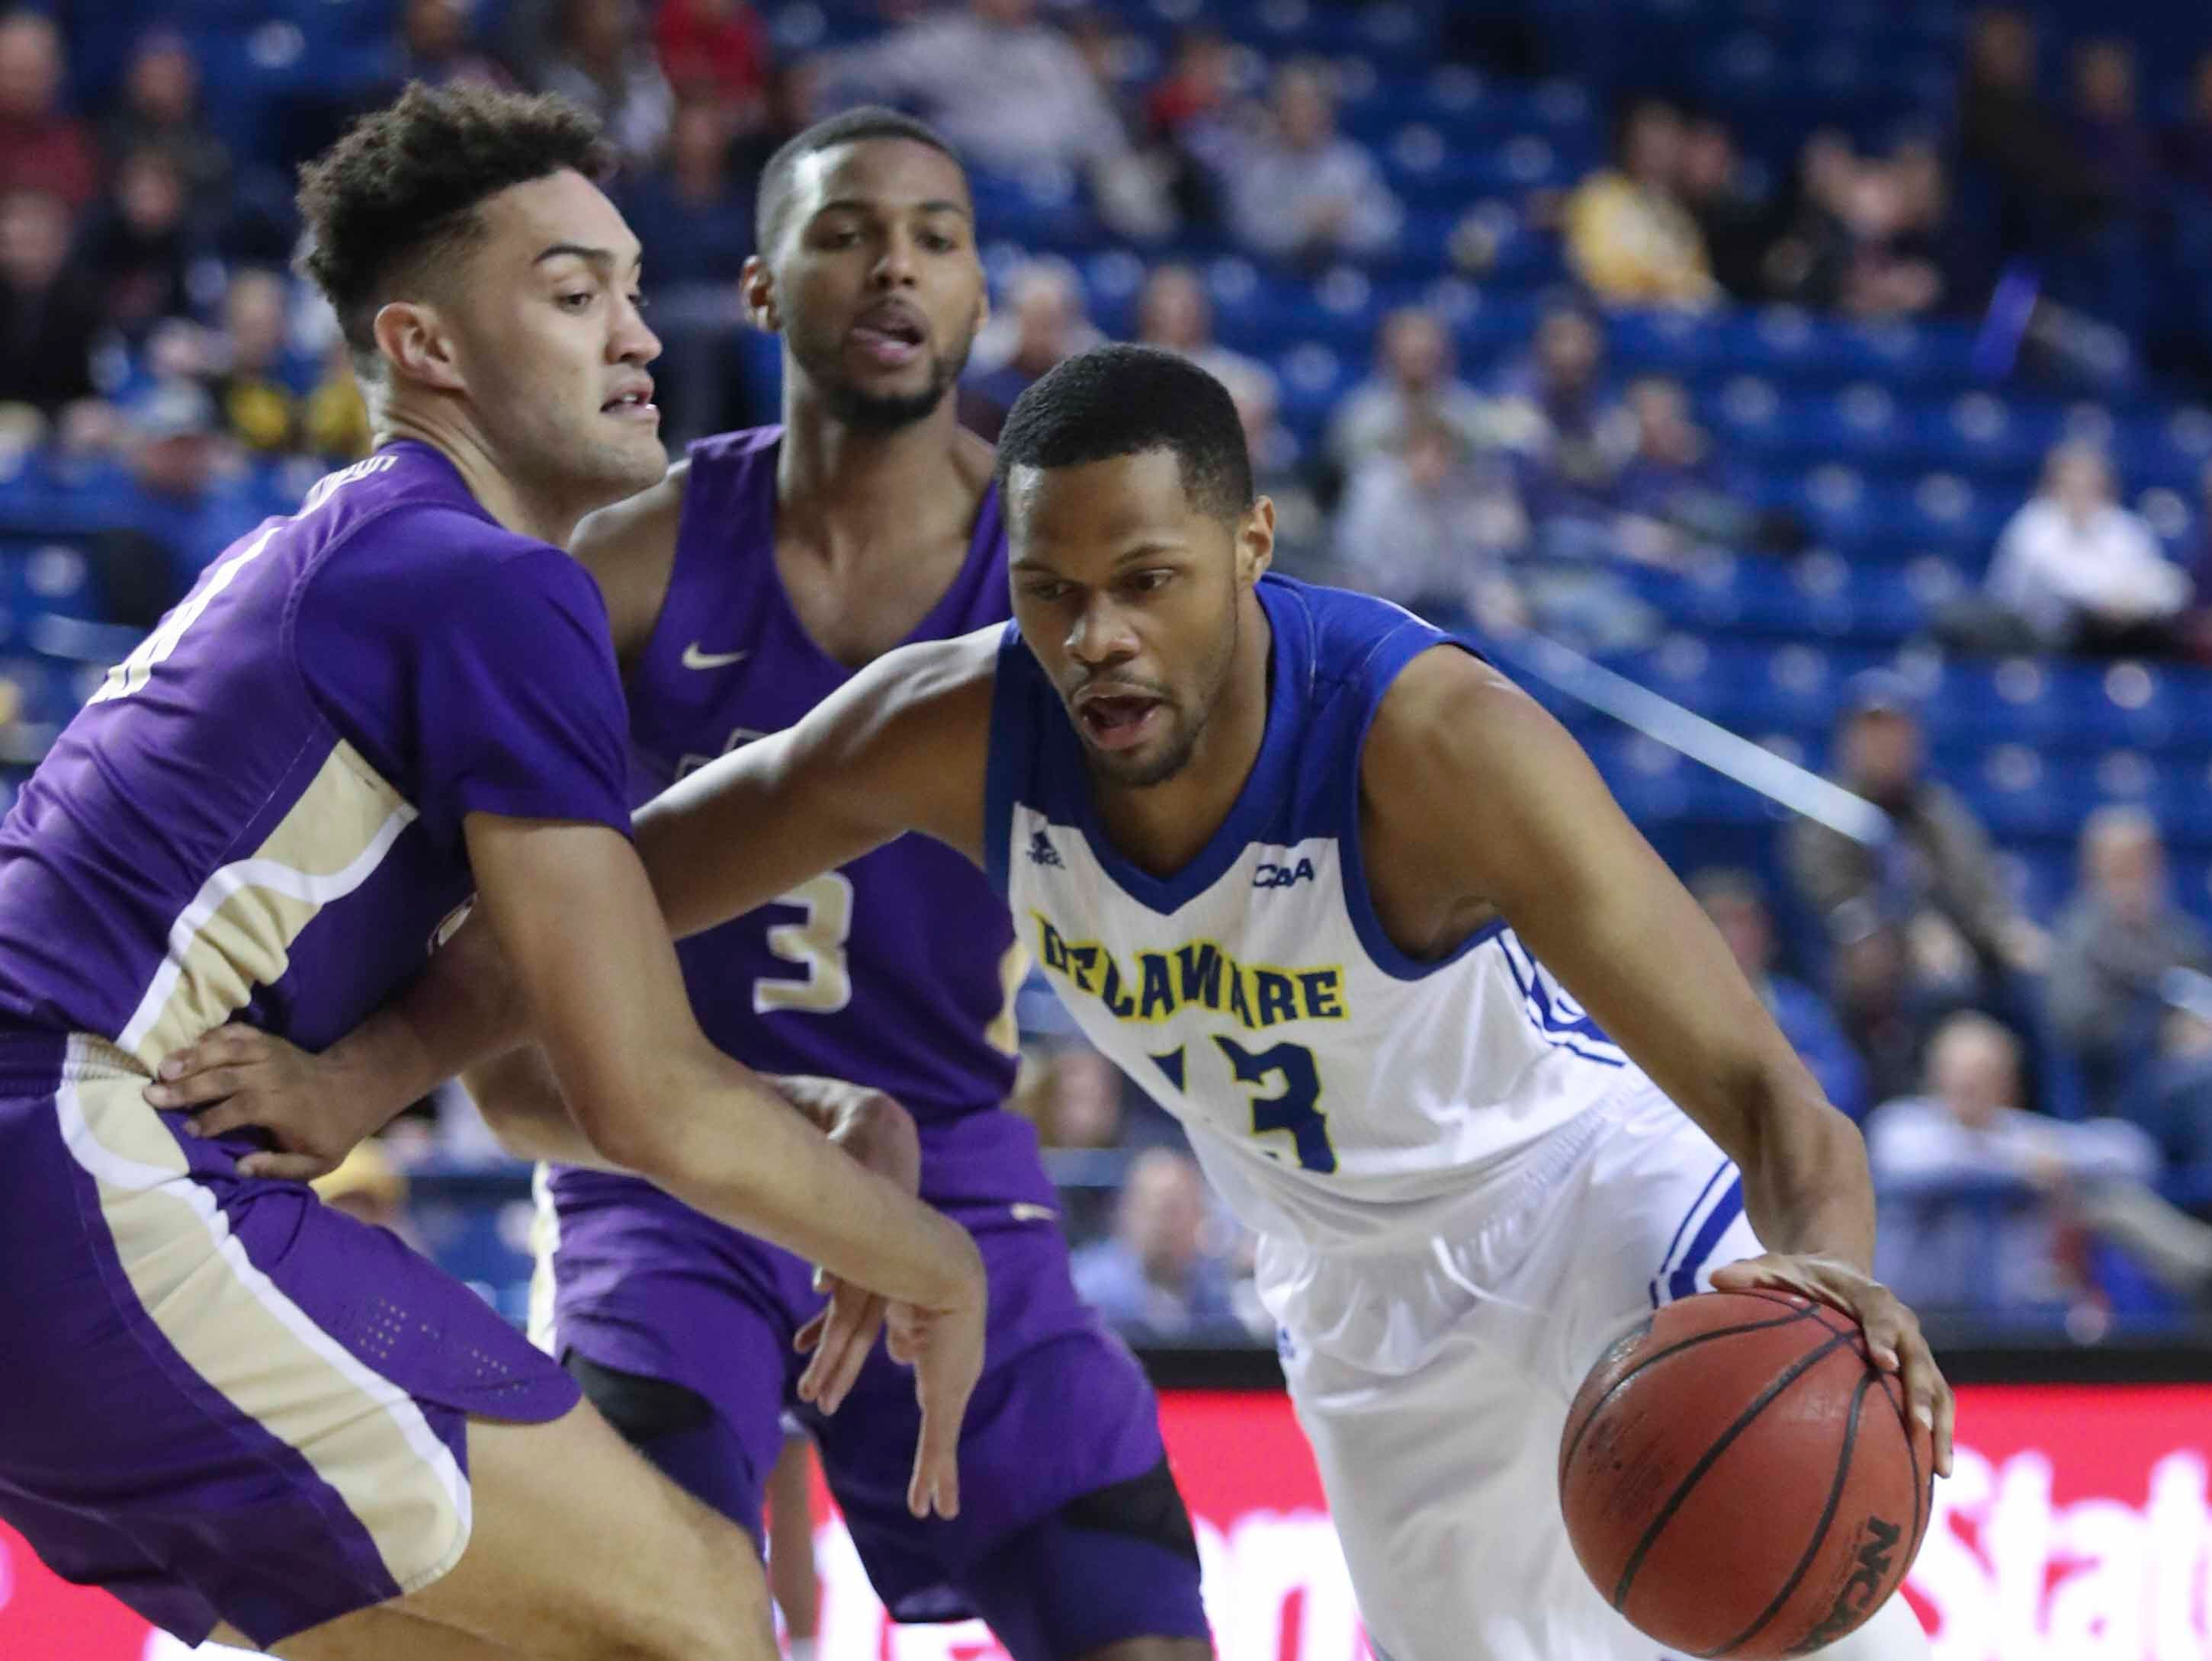 Delaware's Ryan Johnson (right) pushes to the basket against James Madison's Zach Jacobs (left) and Stuckey Mosley in the second half of the Blue Hens' 76-69 win at the Bob Carpenter Center Thursday.